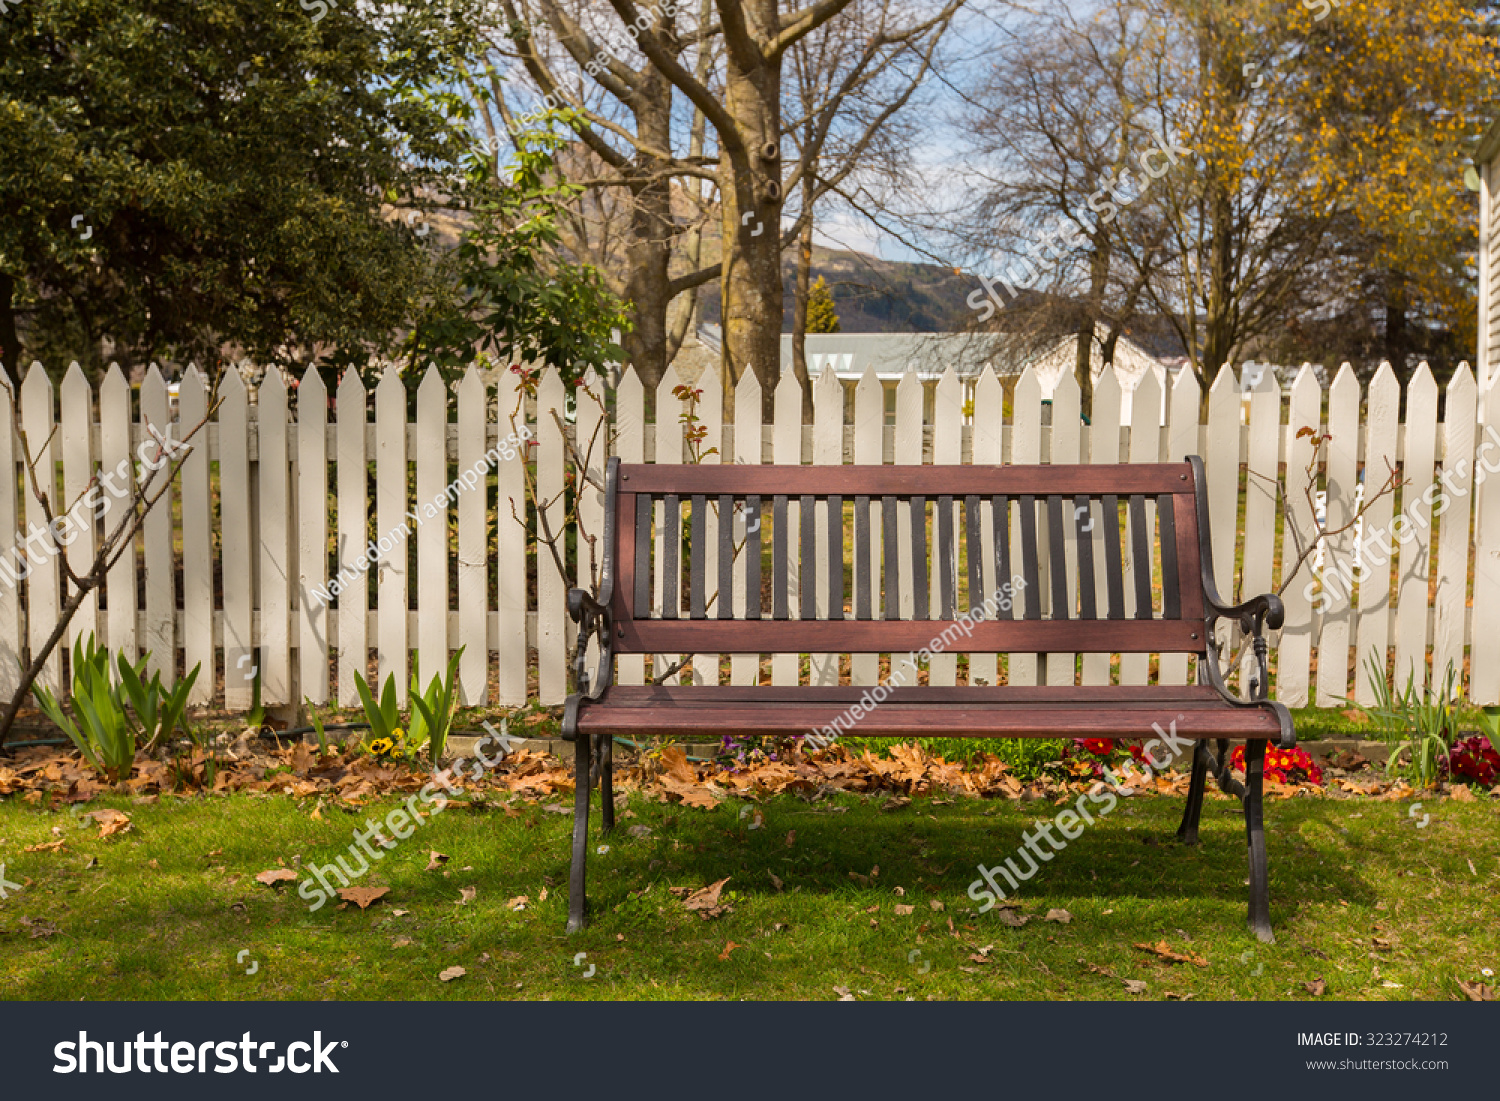 wooden bench in the garden in front of the white fence | EZ Canvas